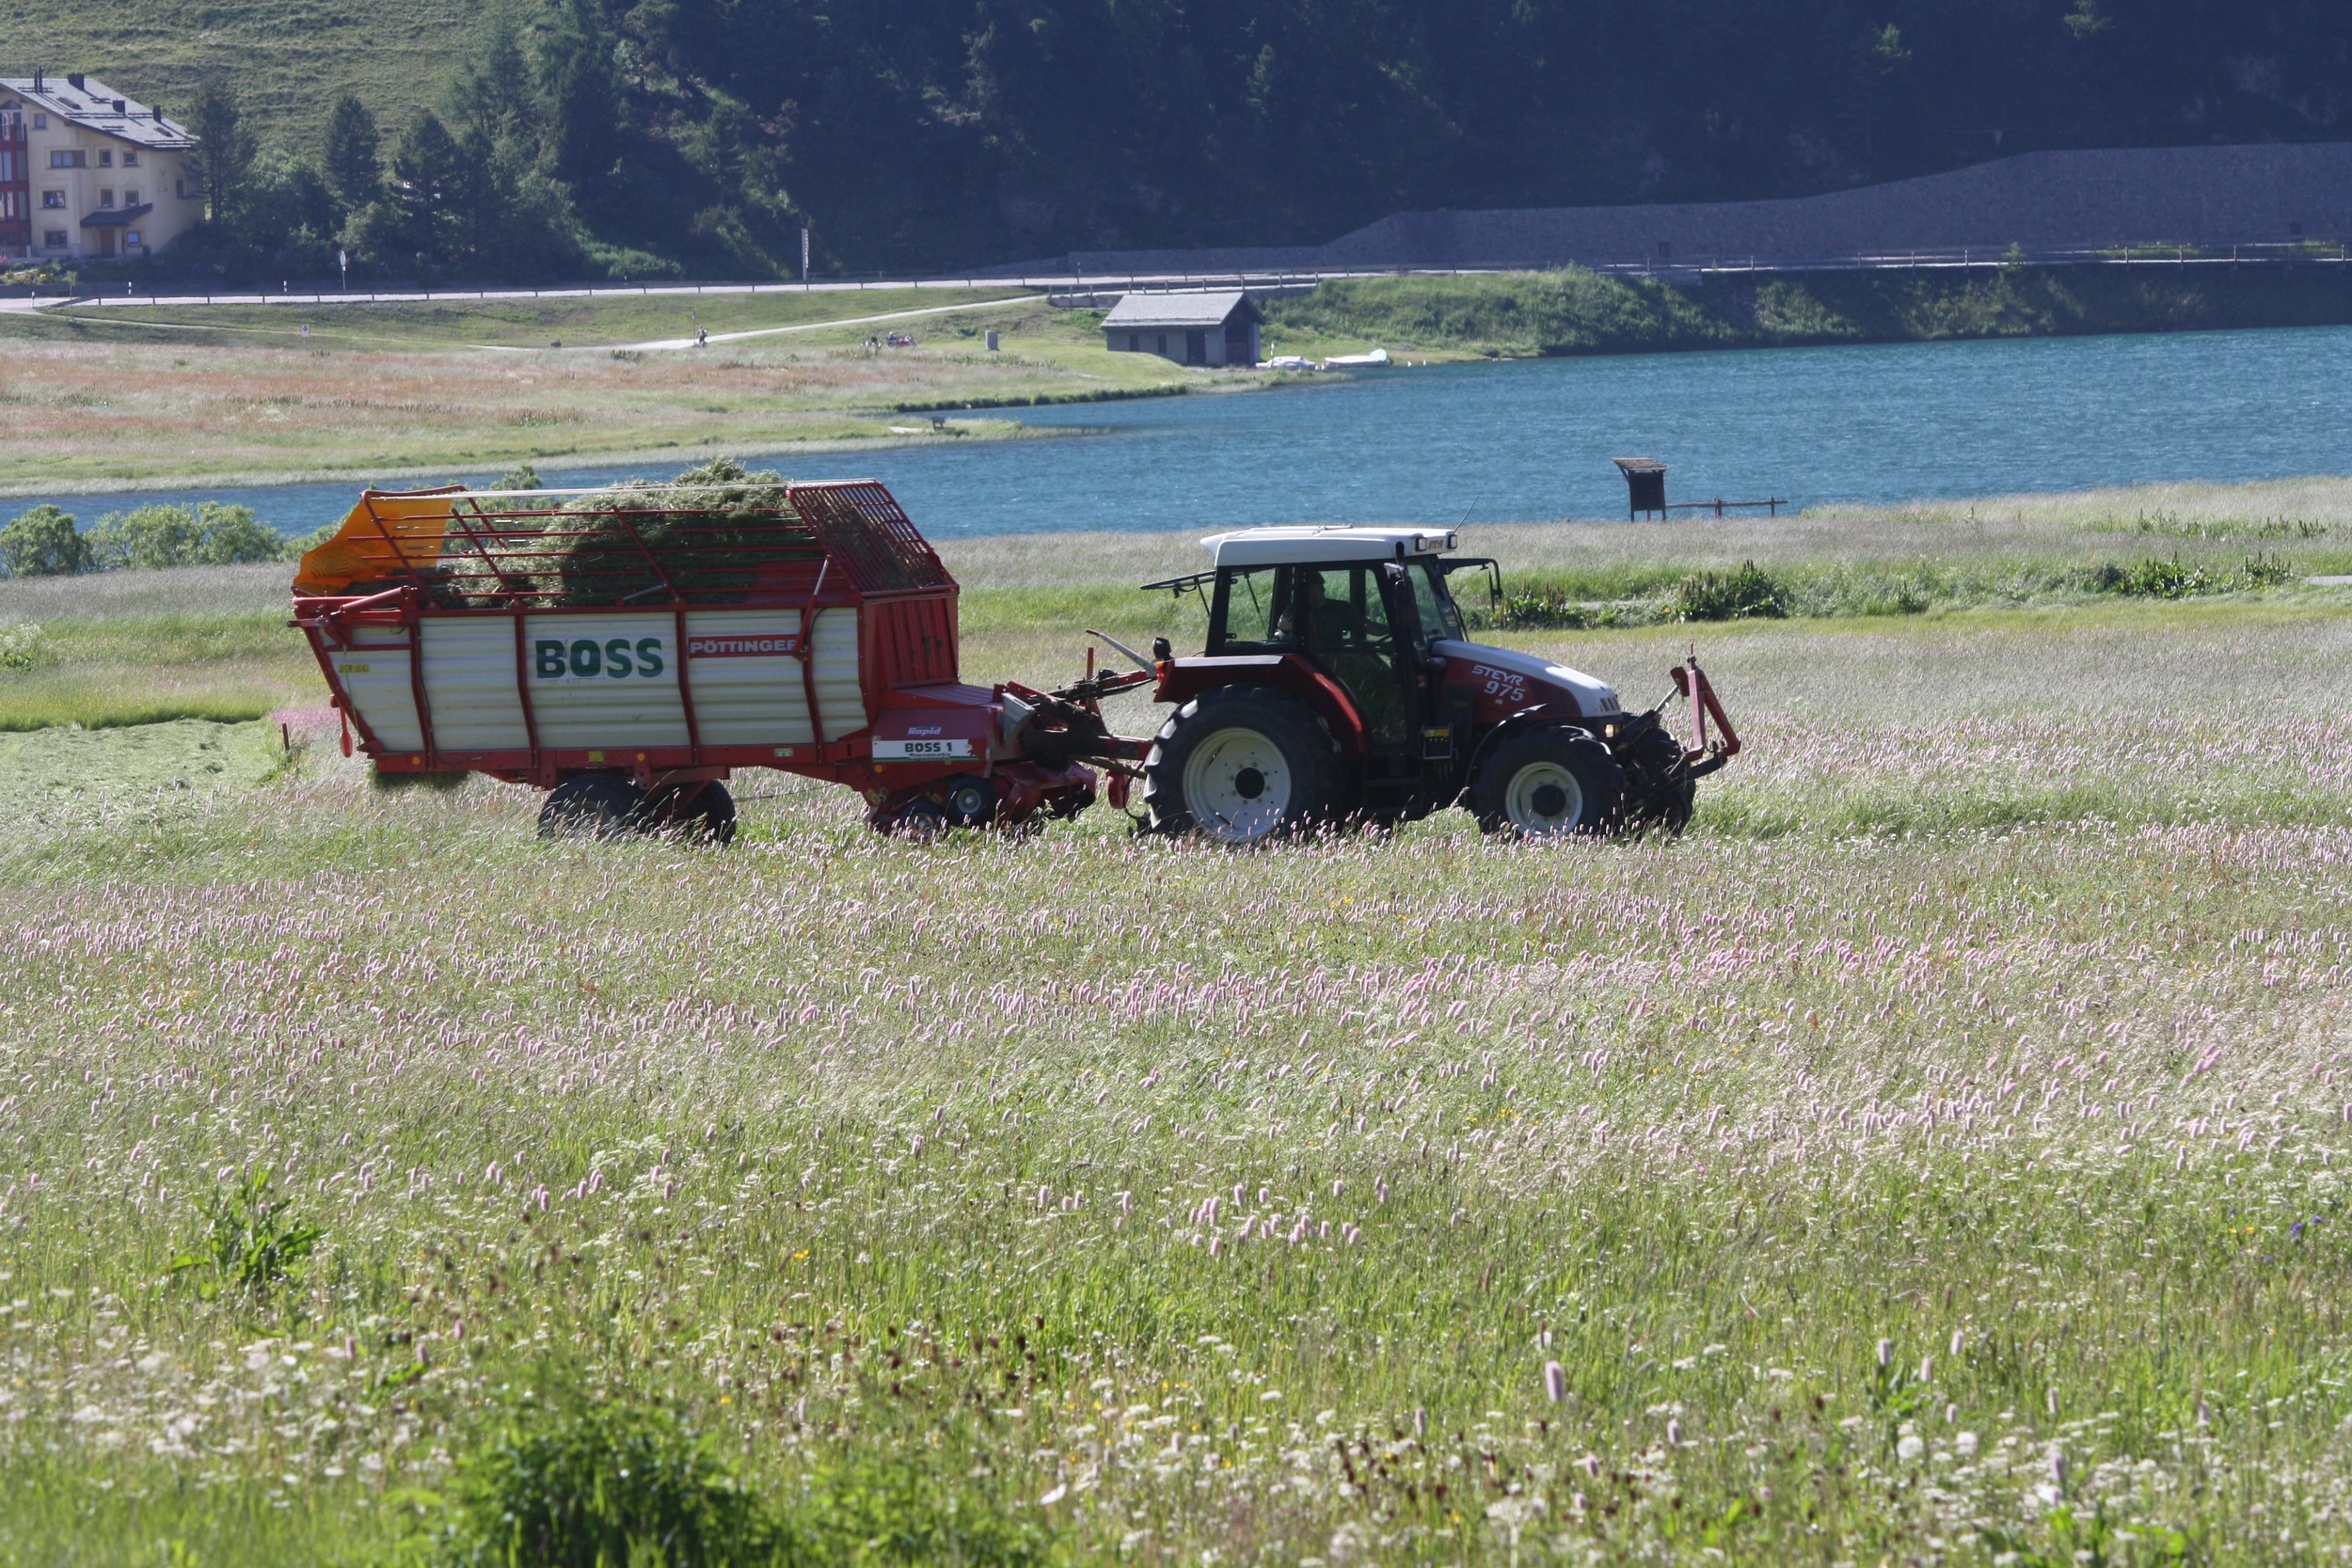 They are already cutting their grass. The grass is so lush that I'm guessing they can get a fewcuts in before winter.